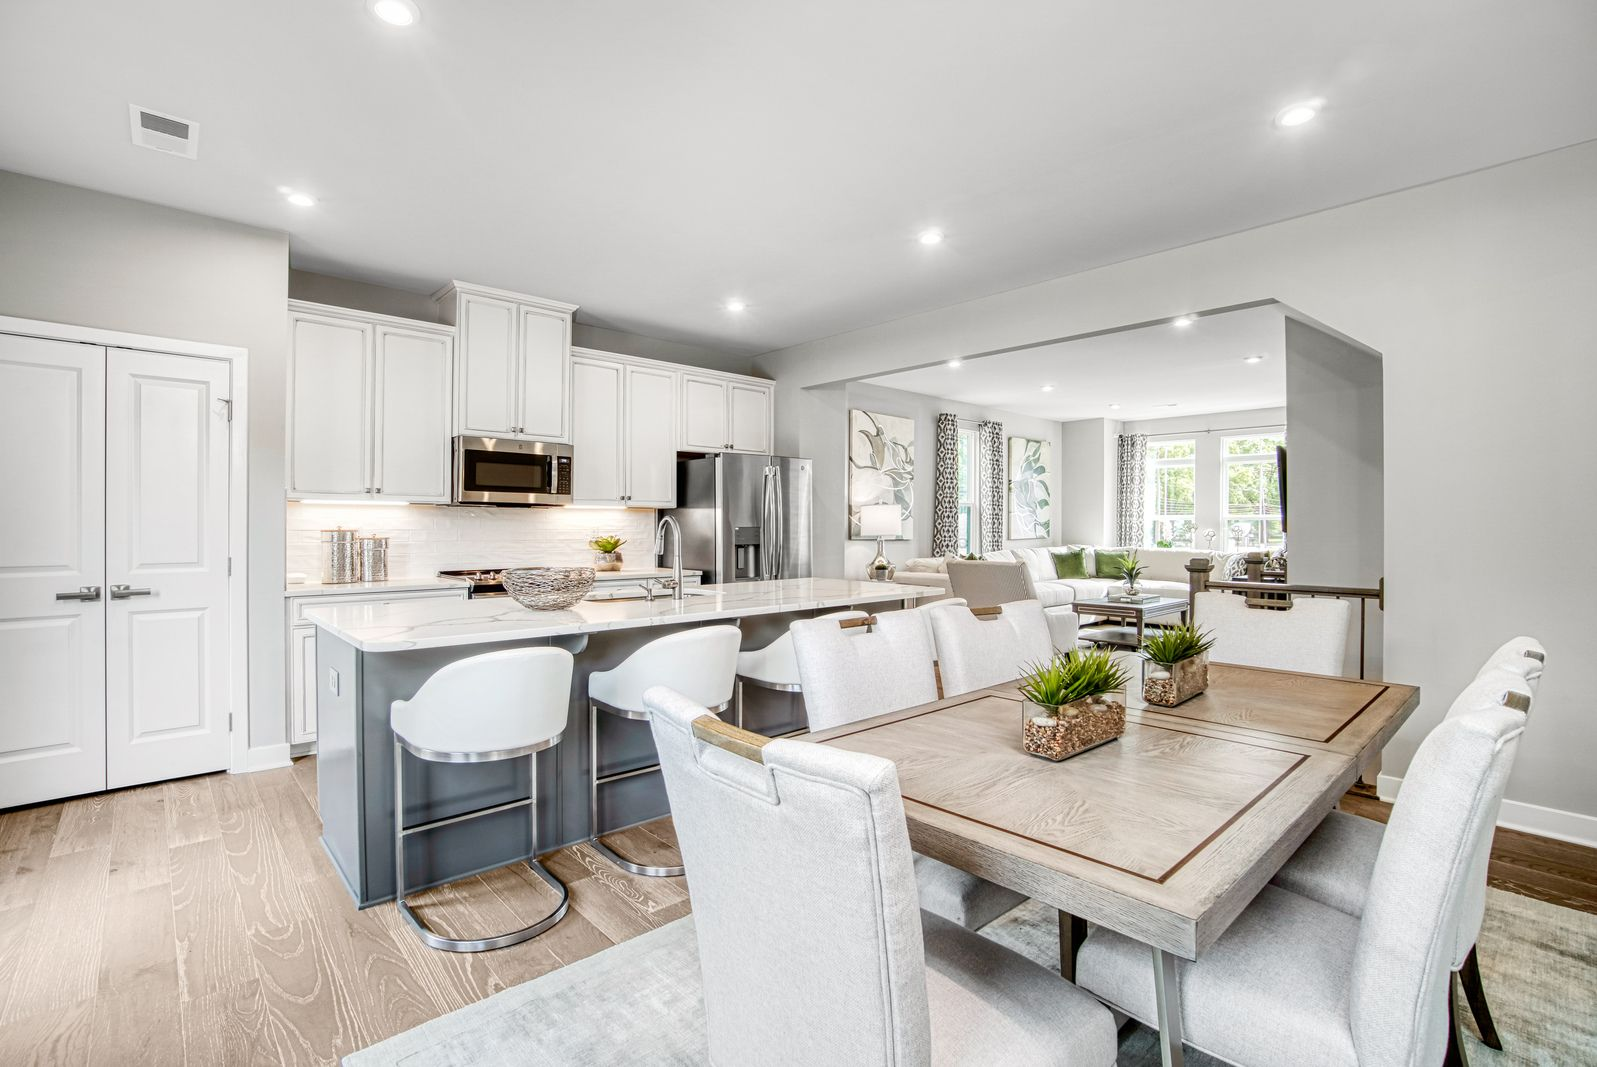 WELCOME TO BLOOM VILLAGE:Own a new garage townhome in the only new community in Montgomery Village.New homesites are released each month. Be one of the first to know when they are released -Join the VIP List.